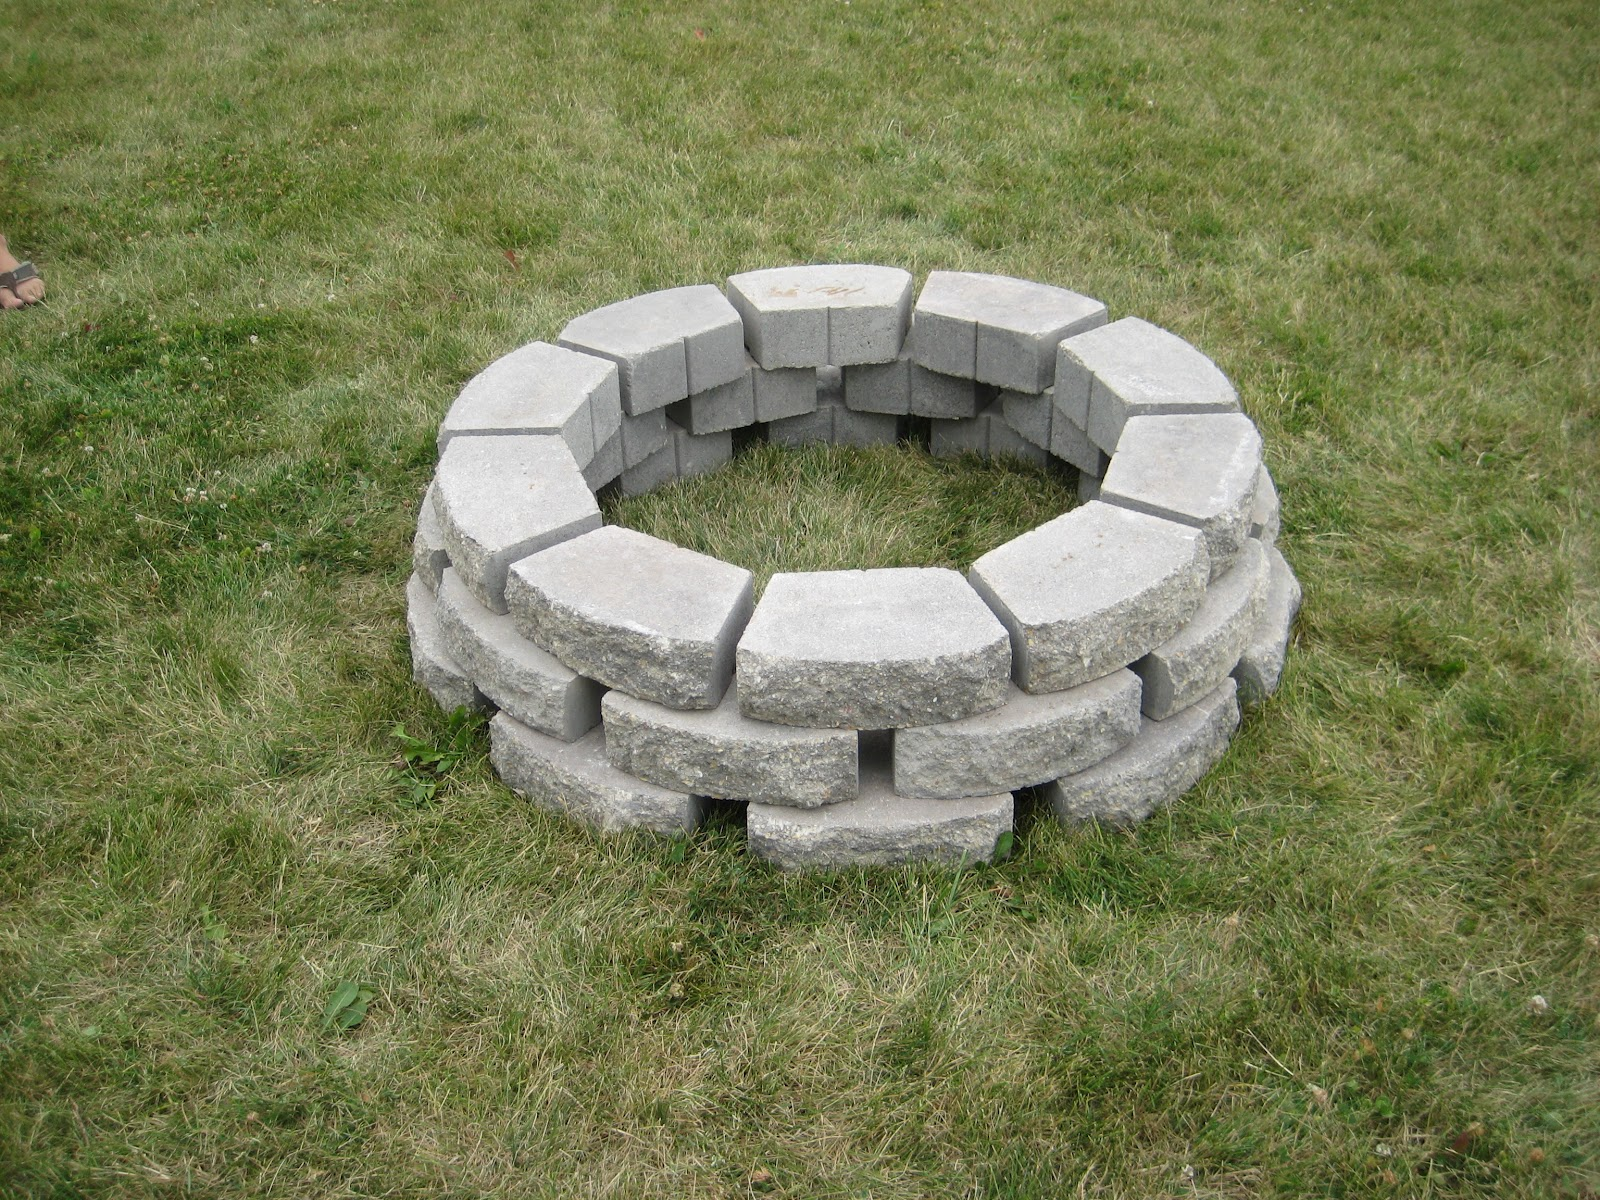 Momma In Flip Flops2!: DIY Homemade Fire Pit thanks to # ...